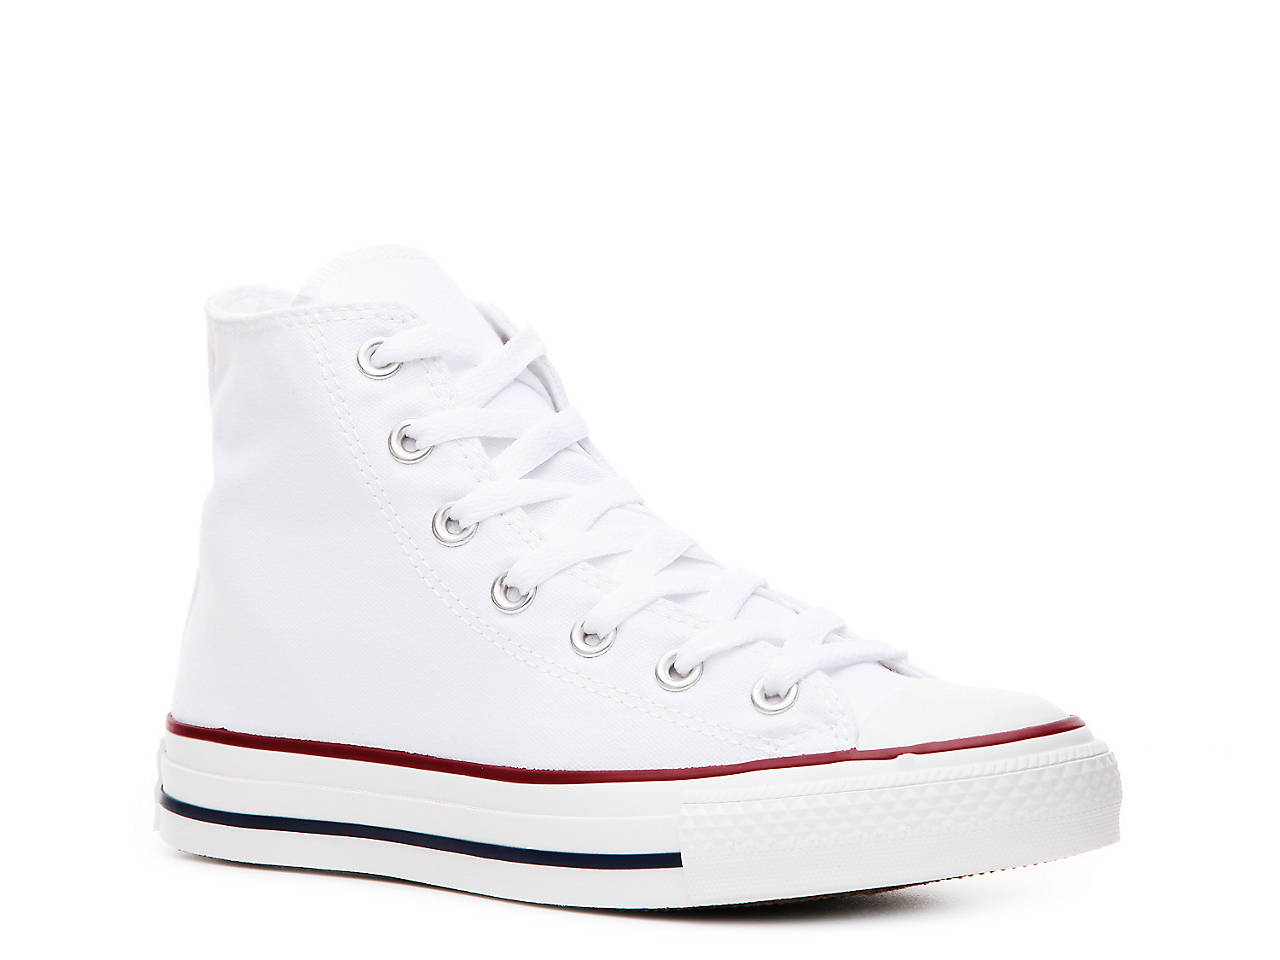 da98294f8904 Converse Chuck Taylor All Star High-Top Sneaker - Women s Women s ...